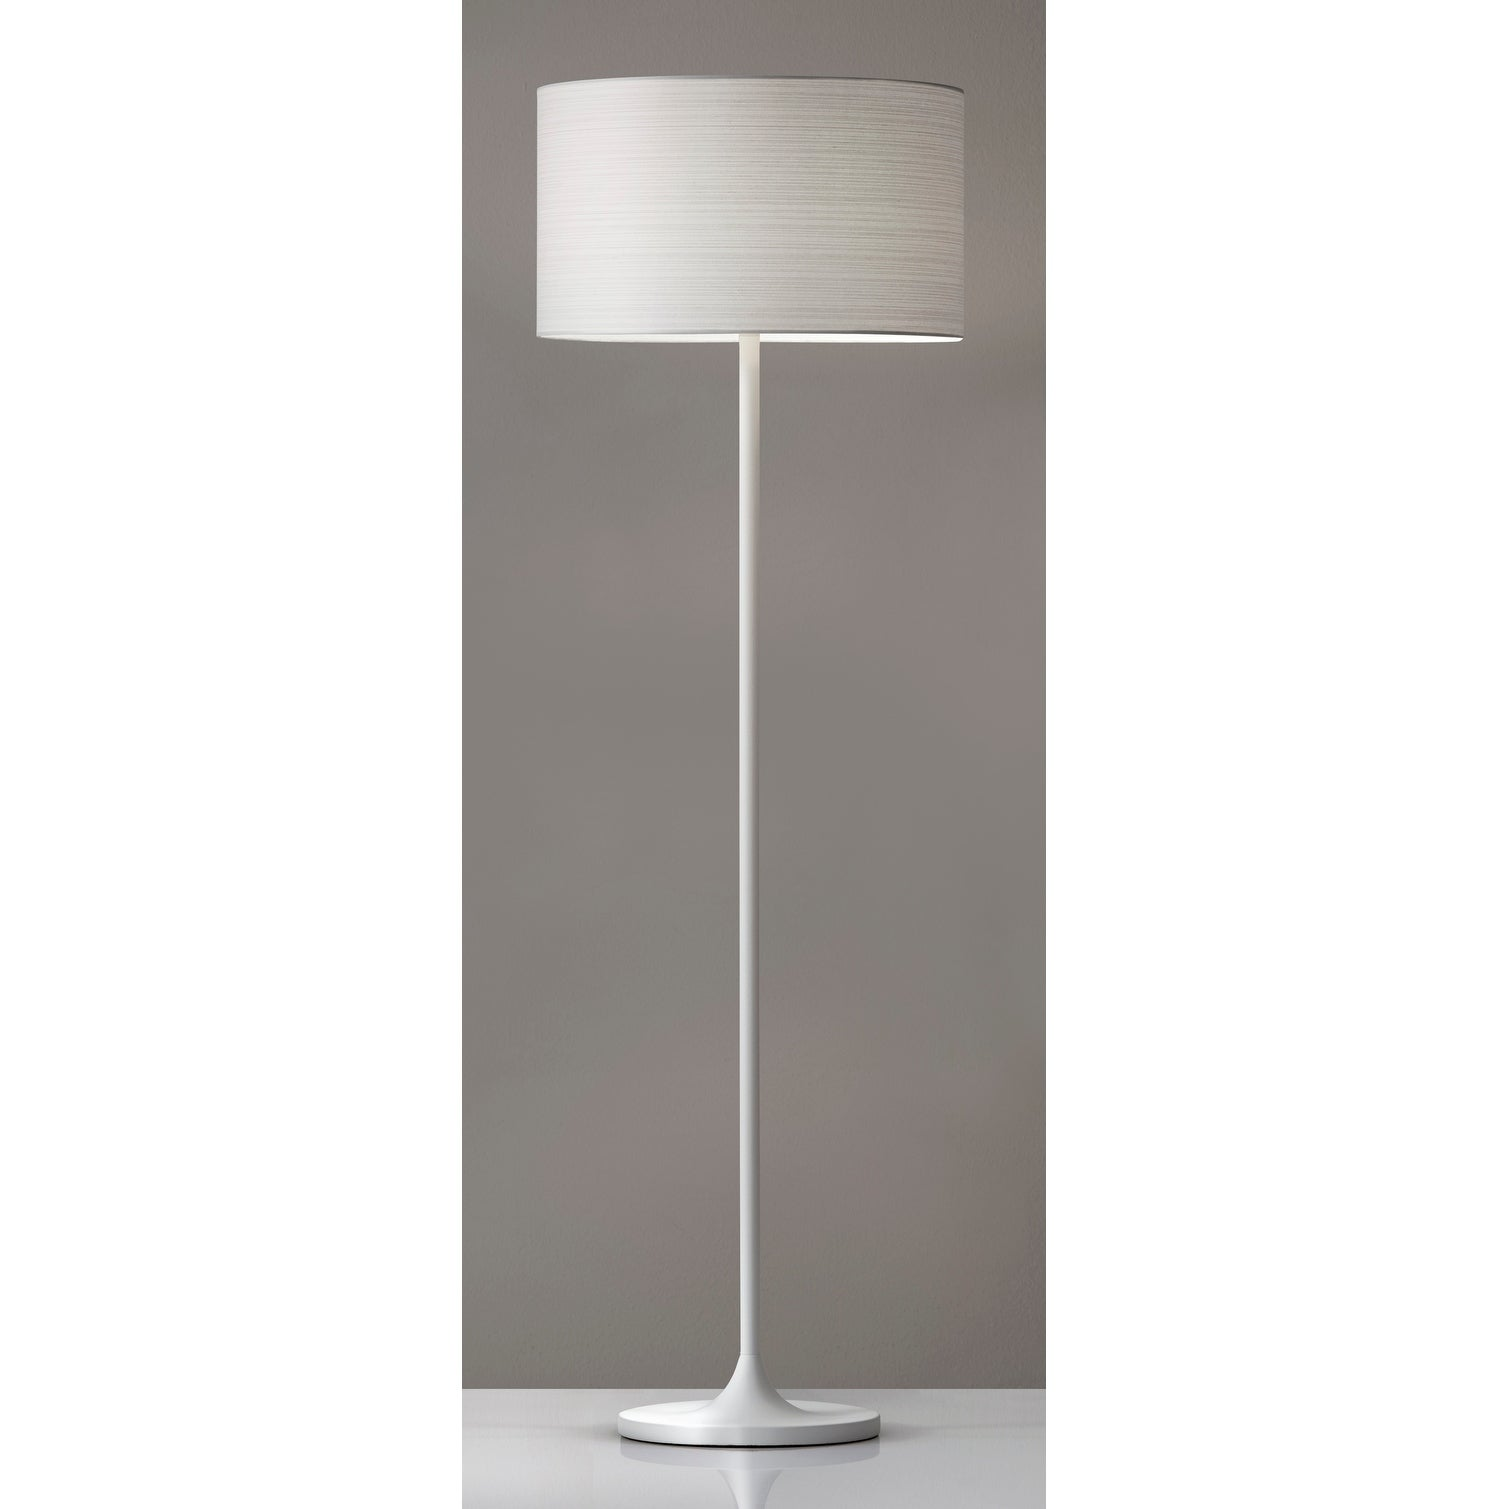 Image of: Shop Black Friday Deals On Adesso Oslo White Floor Lamp Overstock 23034092